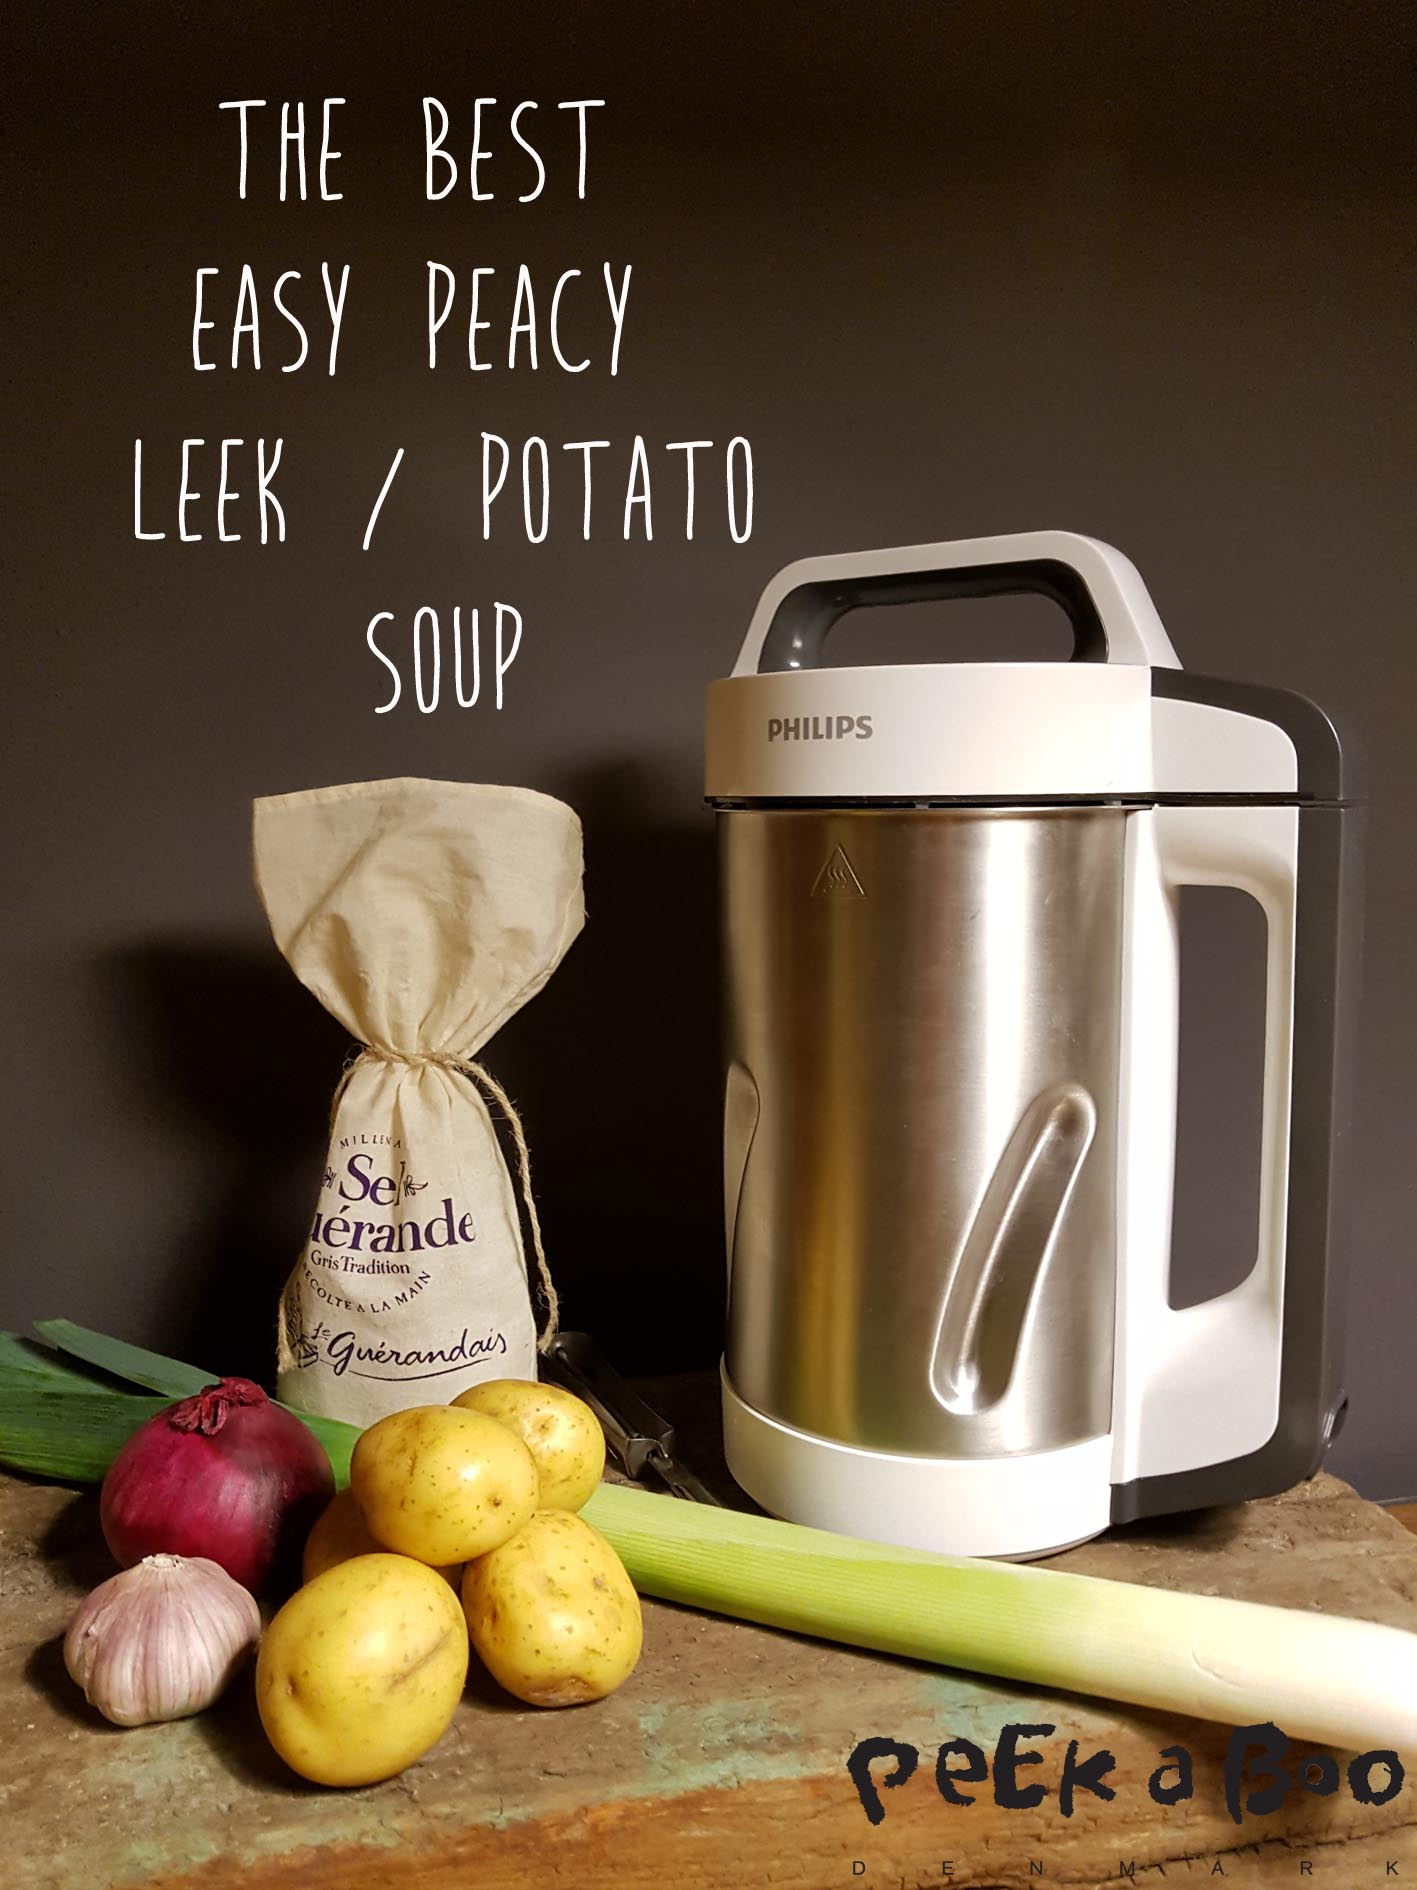 Philips soupmaker is the easiest way to make a healthy lunch.